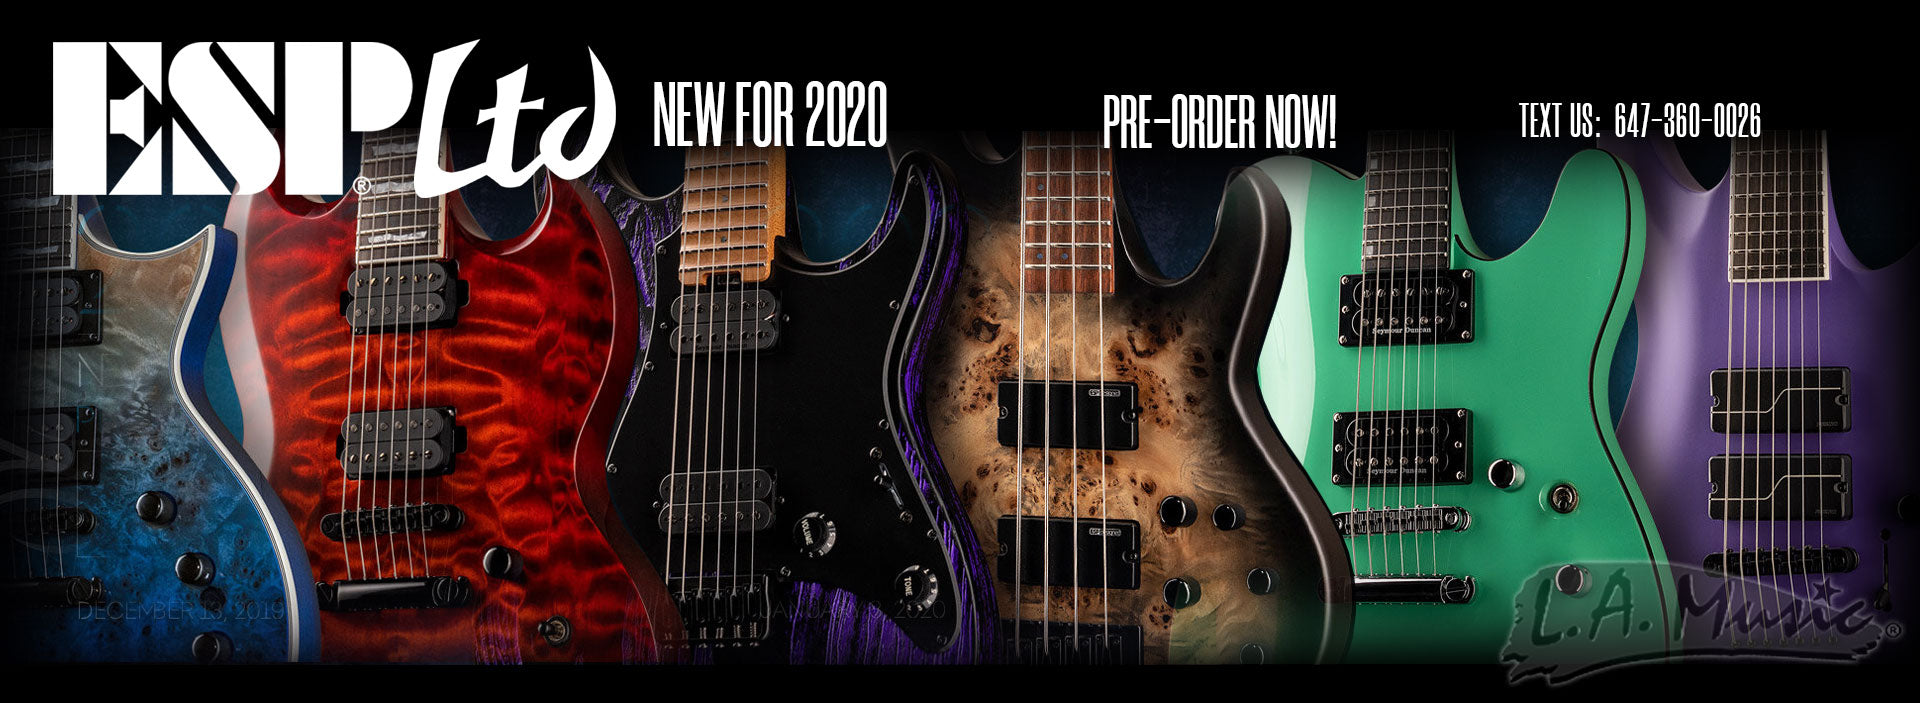 ESP LTD NEW FOR 2020